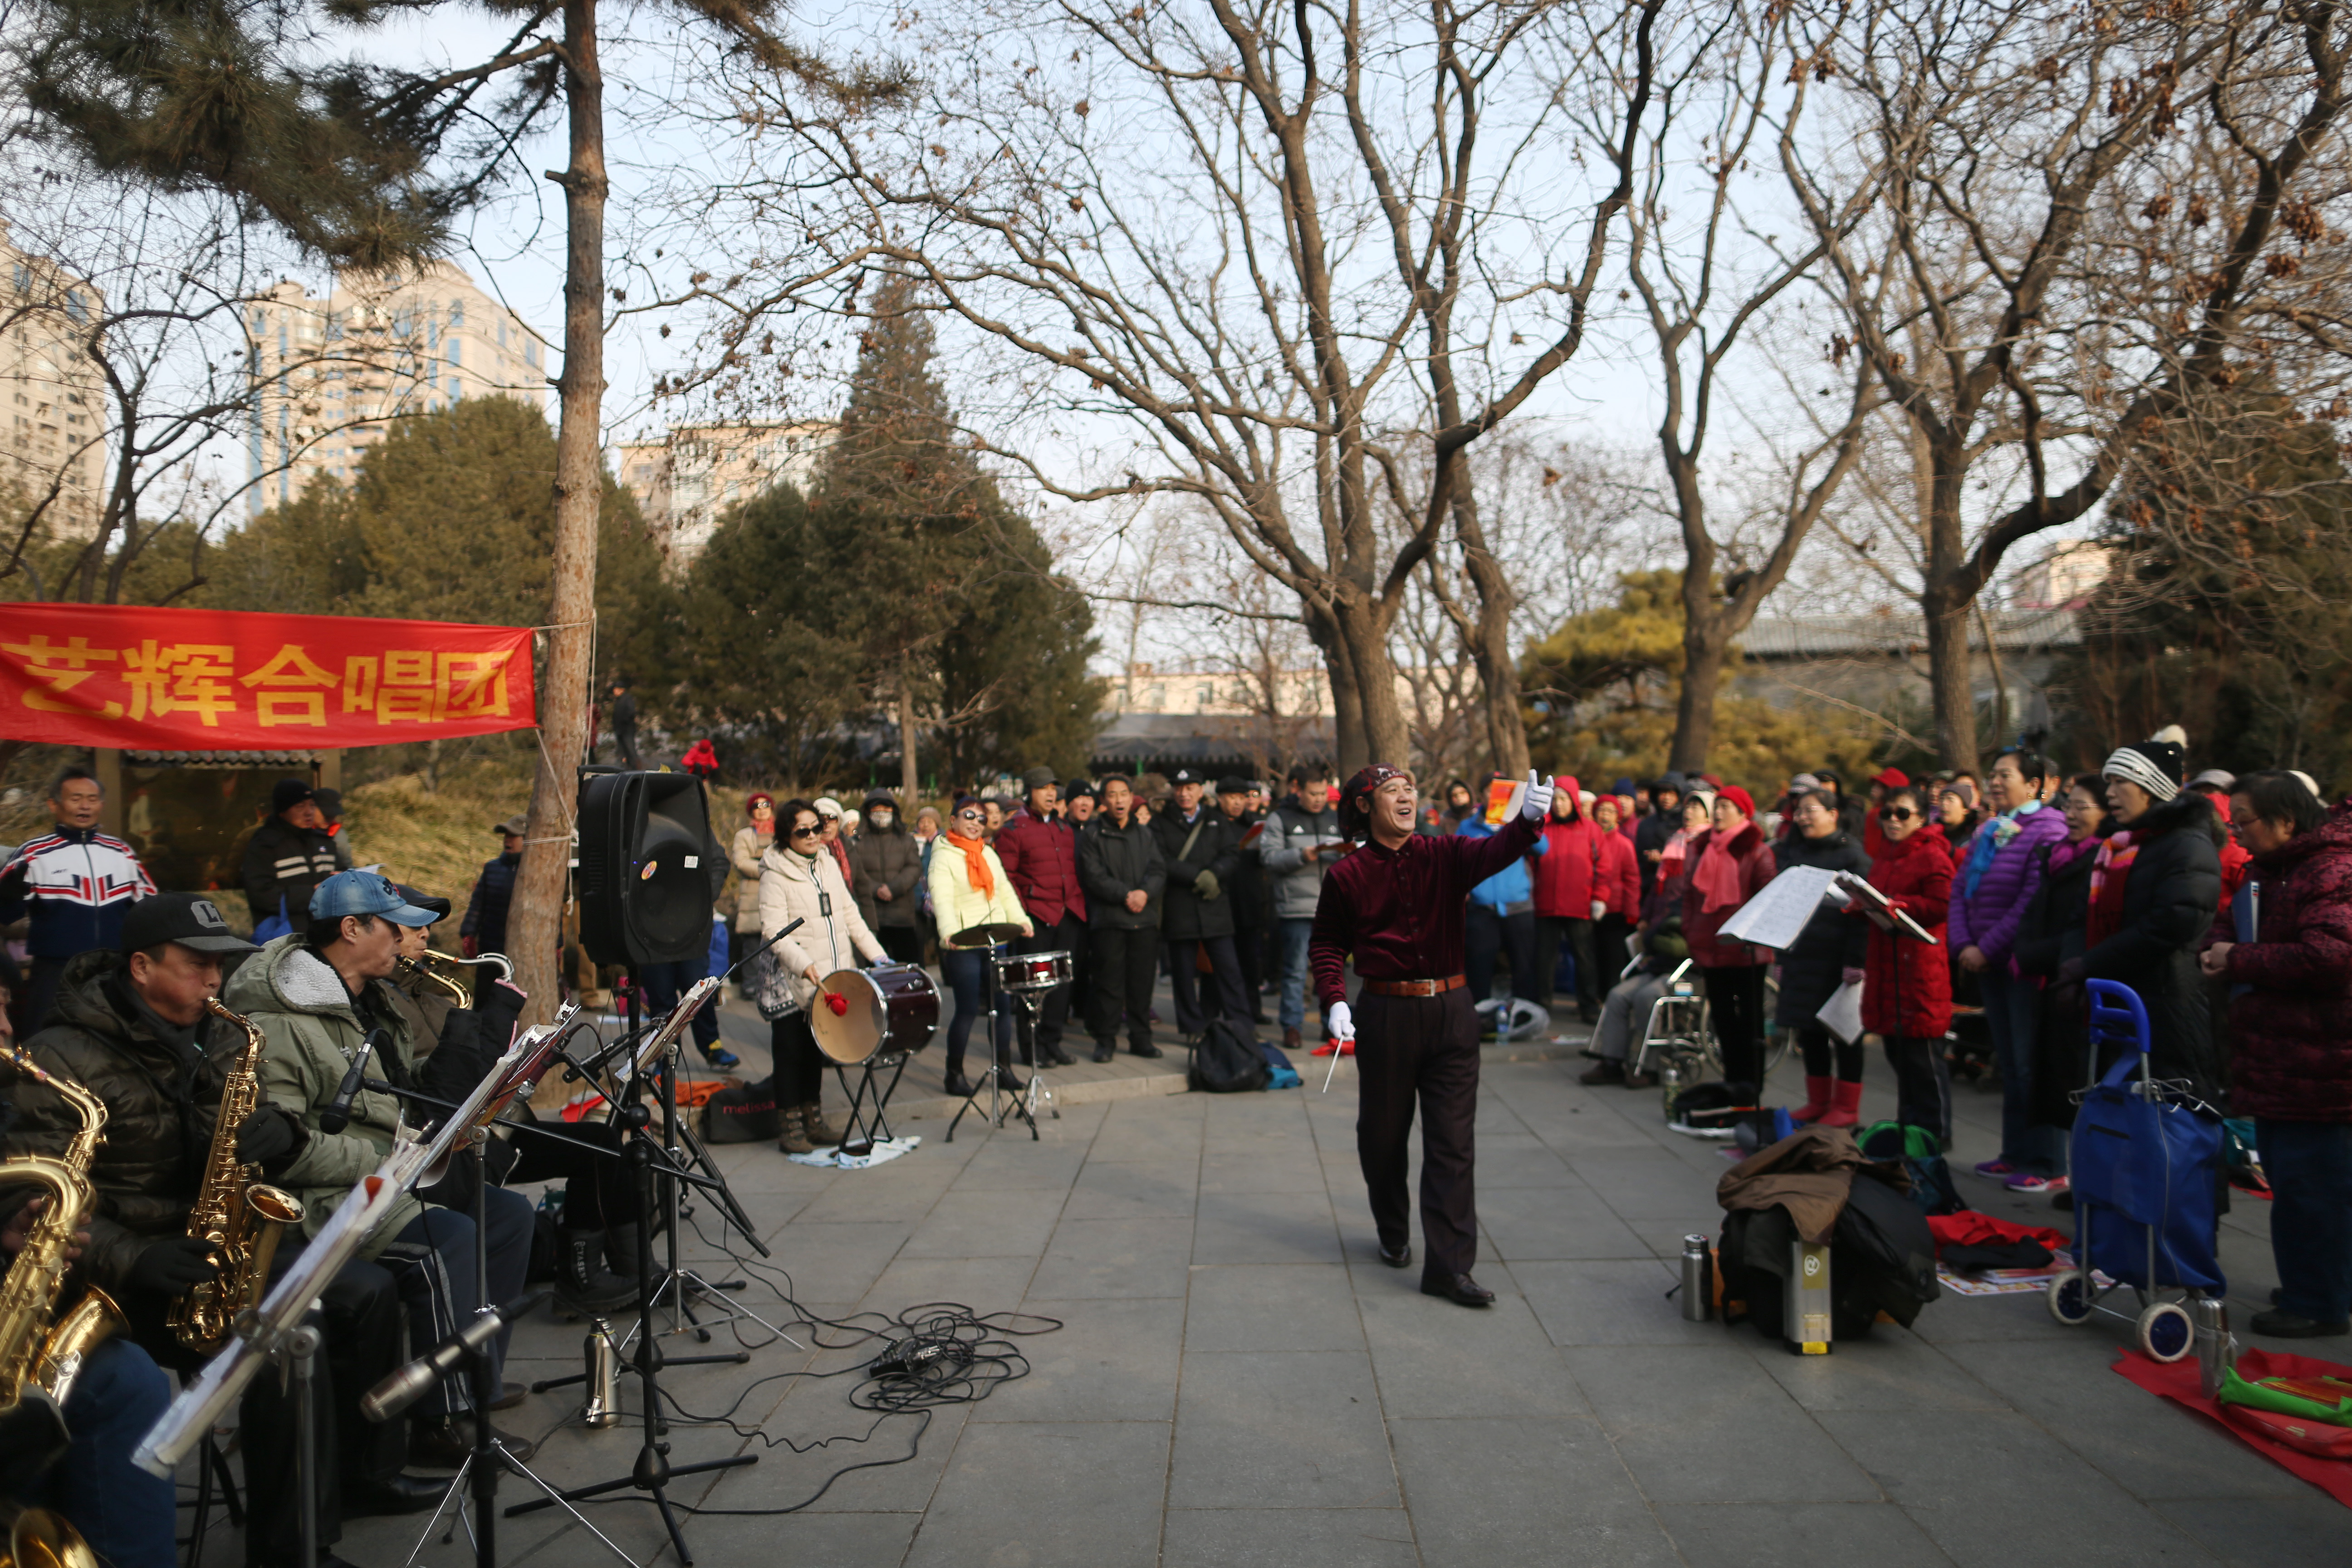 A conductor leads Chinese residents of a choir singing in a park on a clear day after the end of a long orange alert for smog in Beijing, China, 08 January 2017. People came out in droves to enjoy clean air and clear skies in Beijing after the end of an orange alert for heavy air pollution which lasted seven days, beginning on 02 January 2017. EPA/HOW HWEE YOUNG